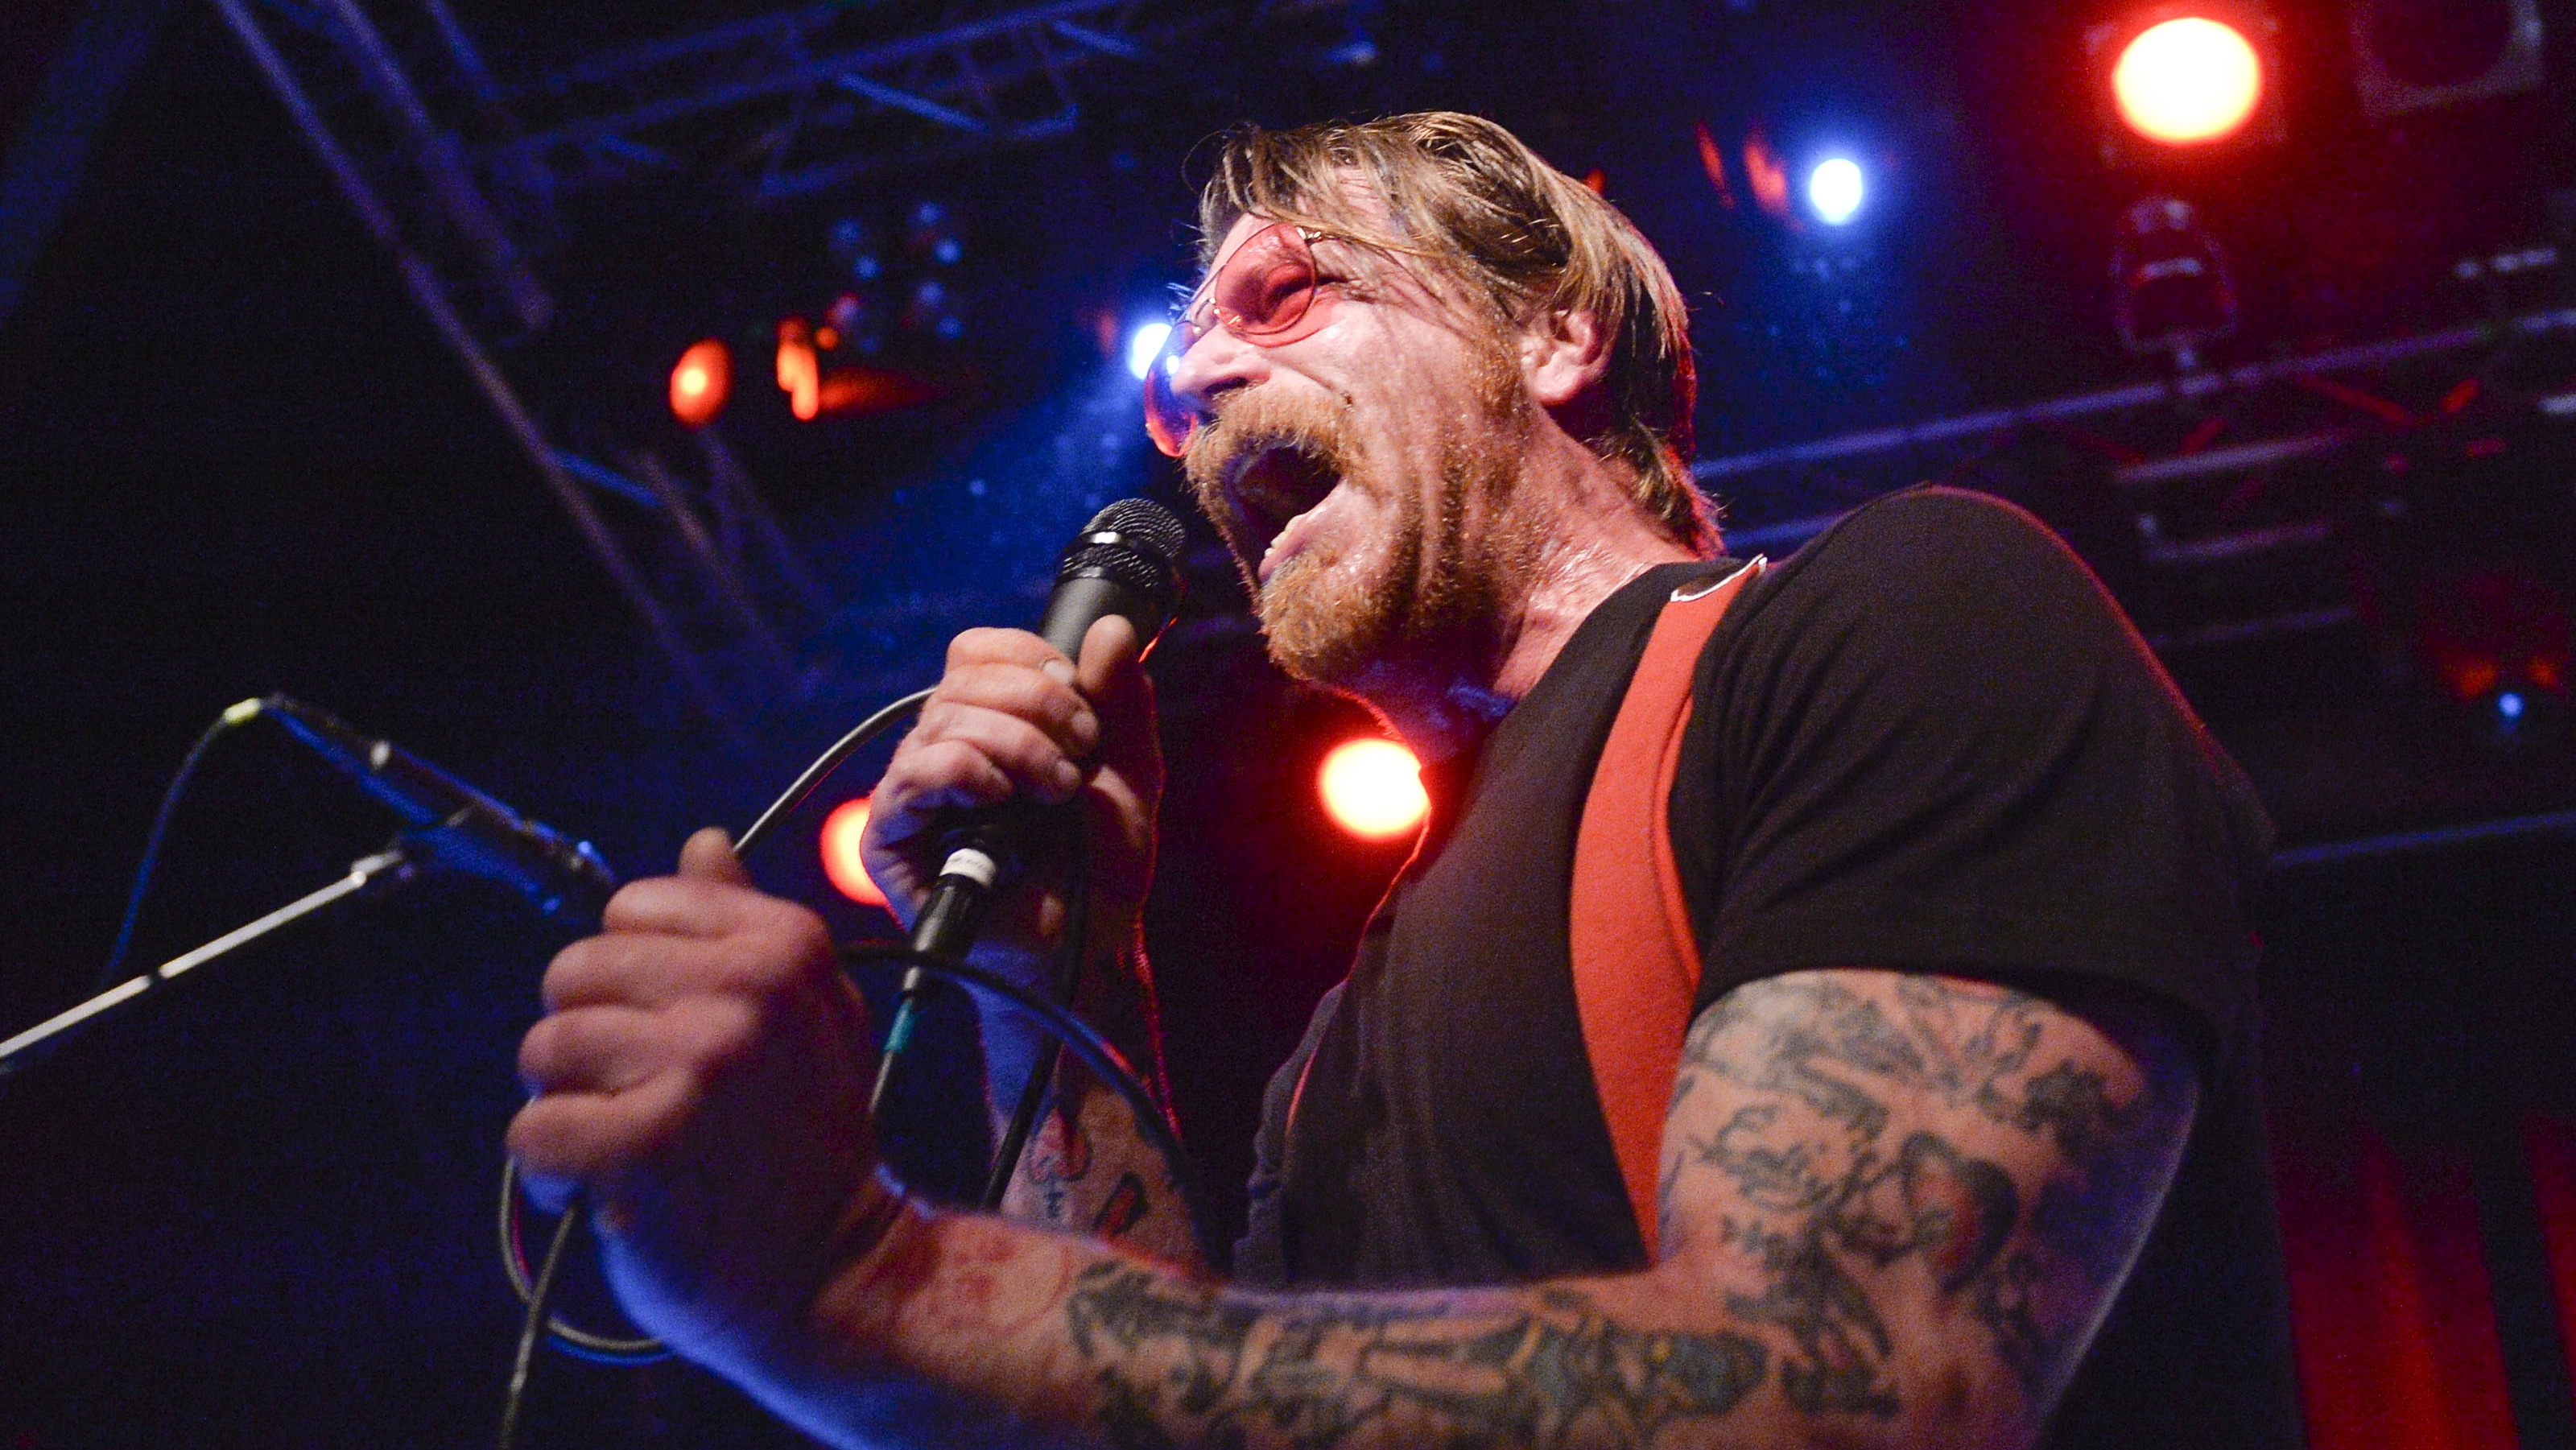 Singer of Eagles of Death Metal, Jesse Hughes, is pictured at the concert at Debaser Medis in Stockholm, Sweden, February 13, 2016. The concert in Stockholm is the bandís first after the Bataclan terror attack in Paris in November.  REUTERS/Vilhelm Stokstad/TT News Agency     ATTENTION EDITORS - THIS IMAGE WAS PROVIDED BY A THIRD PARTY. FOR EDITORIAL USE ONLY. NOT FOR SALE FOR MARKETING OR ADVERTISING CAMPAIGNS. THIS PICTURE IS DISTRIBUTED EXACTLY AS RECEIVED BY REUTERS, AS A SERVICE TO CLIENTS. SWEDEN OUT. NO COMMERCIAL OR EDITORIAL SALES IN SWEDEN. NO COMMERCIAL SALES. - RTX26T8Z